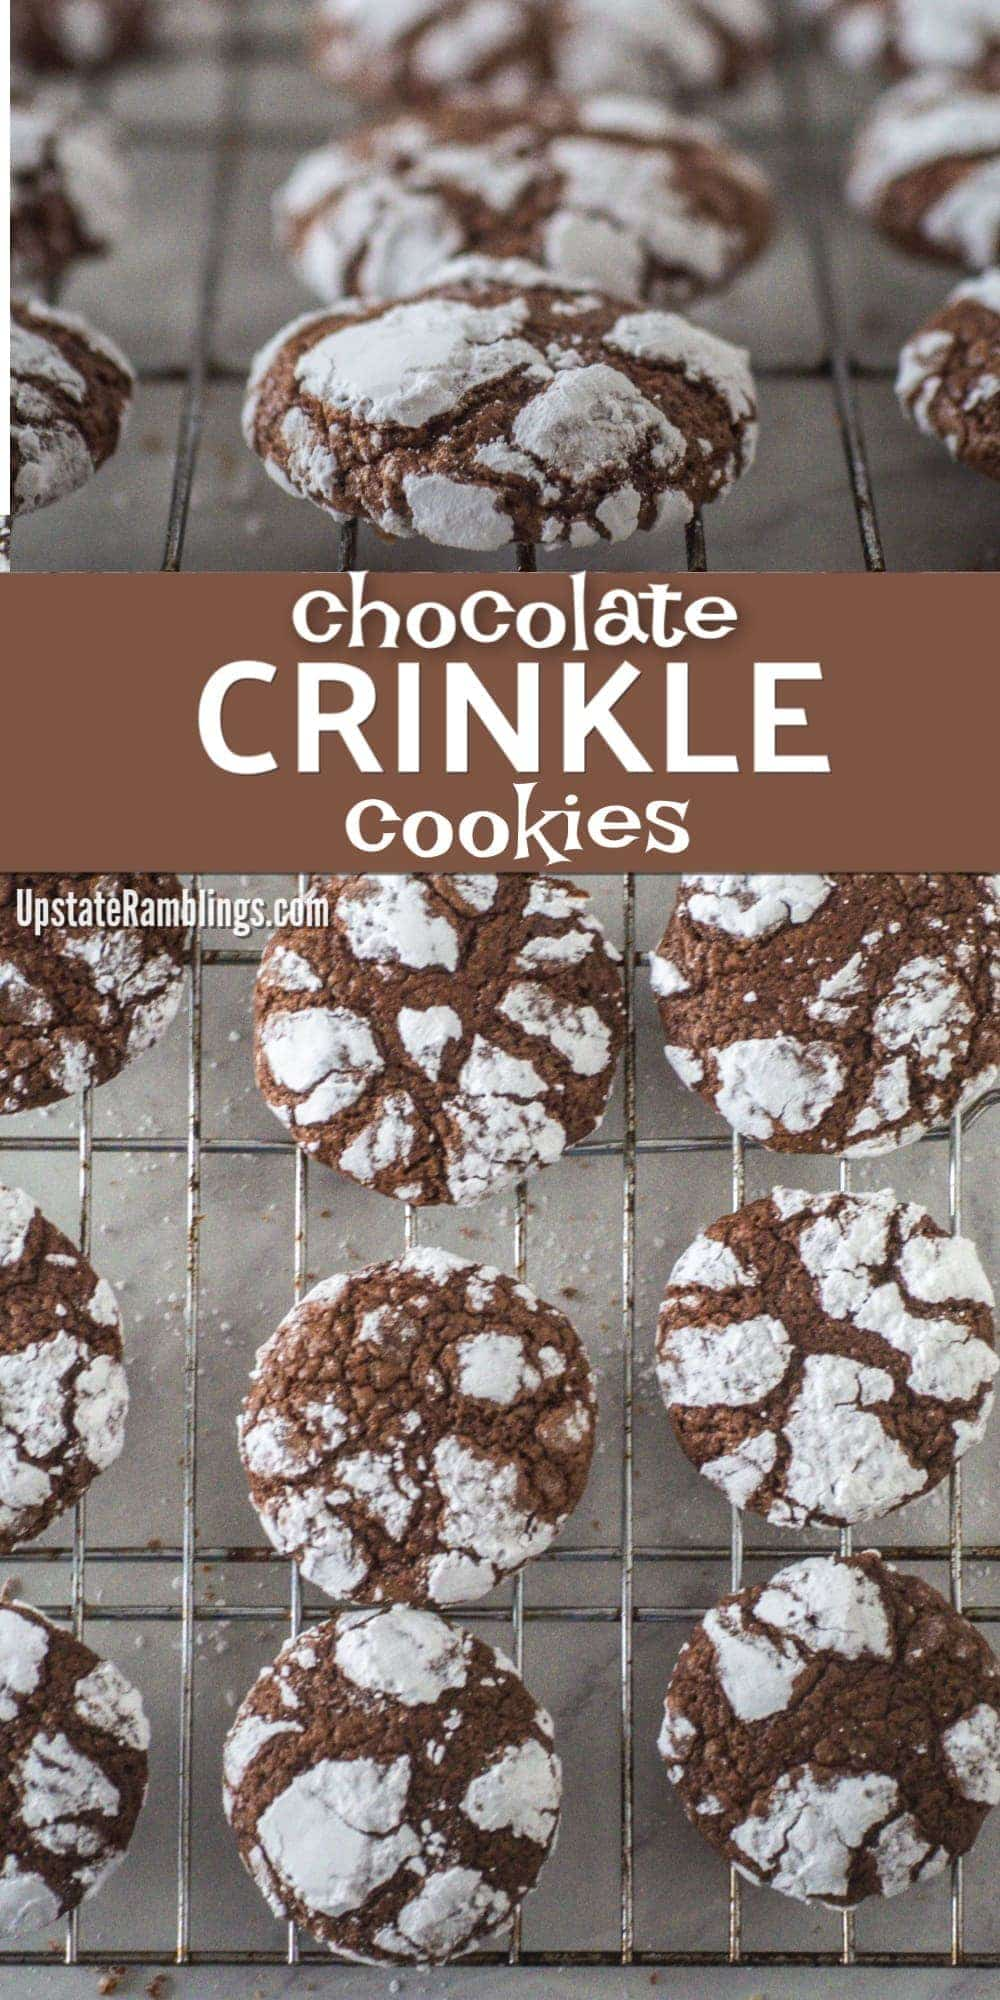 These Chocolate Crinkle Cookies are a classic chocolate cookie. The cookies are soft and chewy, with a gooey center, like a fudgy brownie. This dairy free cookie is easy and fun to make and will satisfy your sweet tooth. They are a traditional Christmas cookie, but tasty enough to make year round! #chocolatecookies #crinklecookies